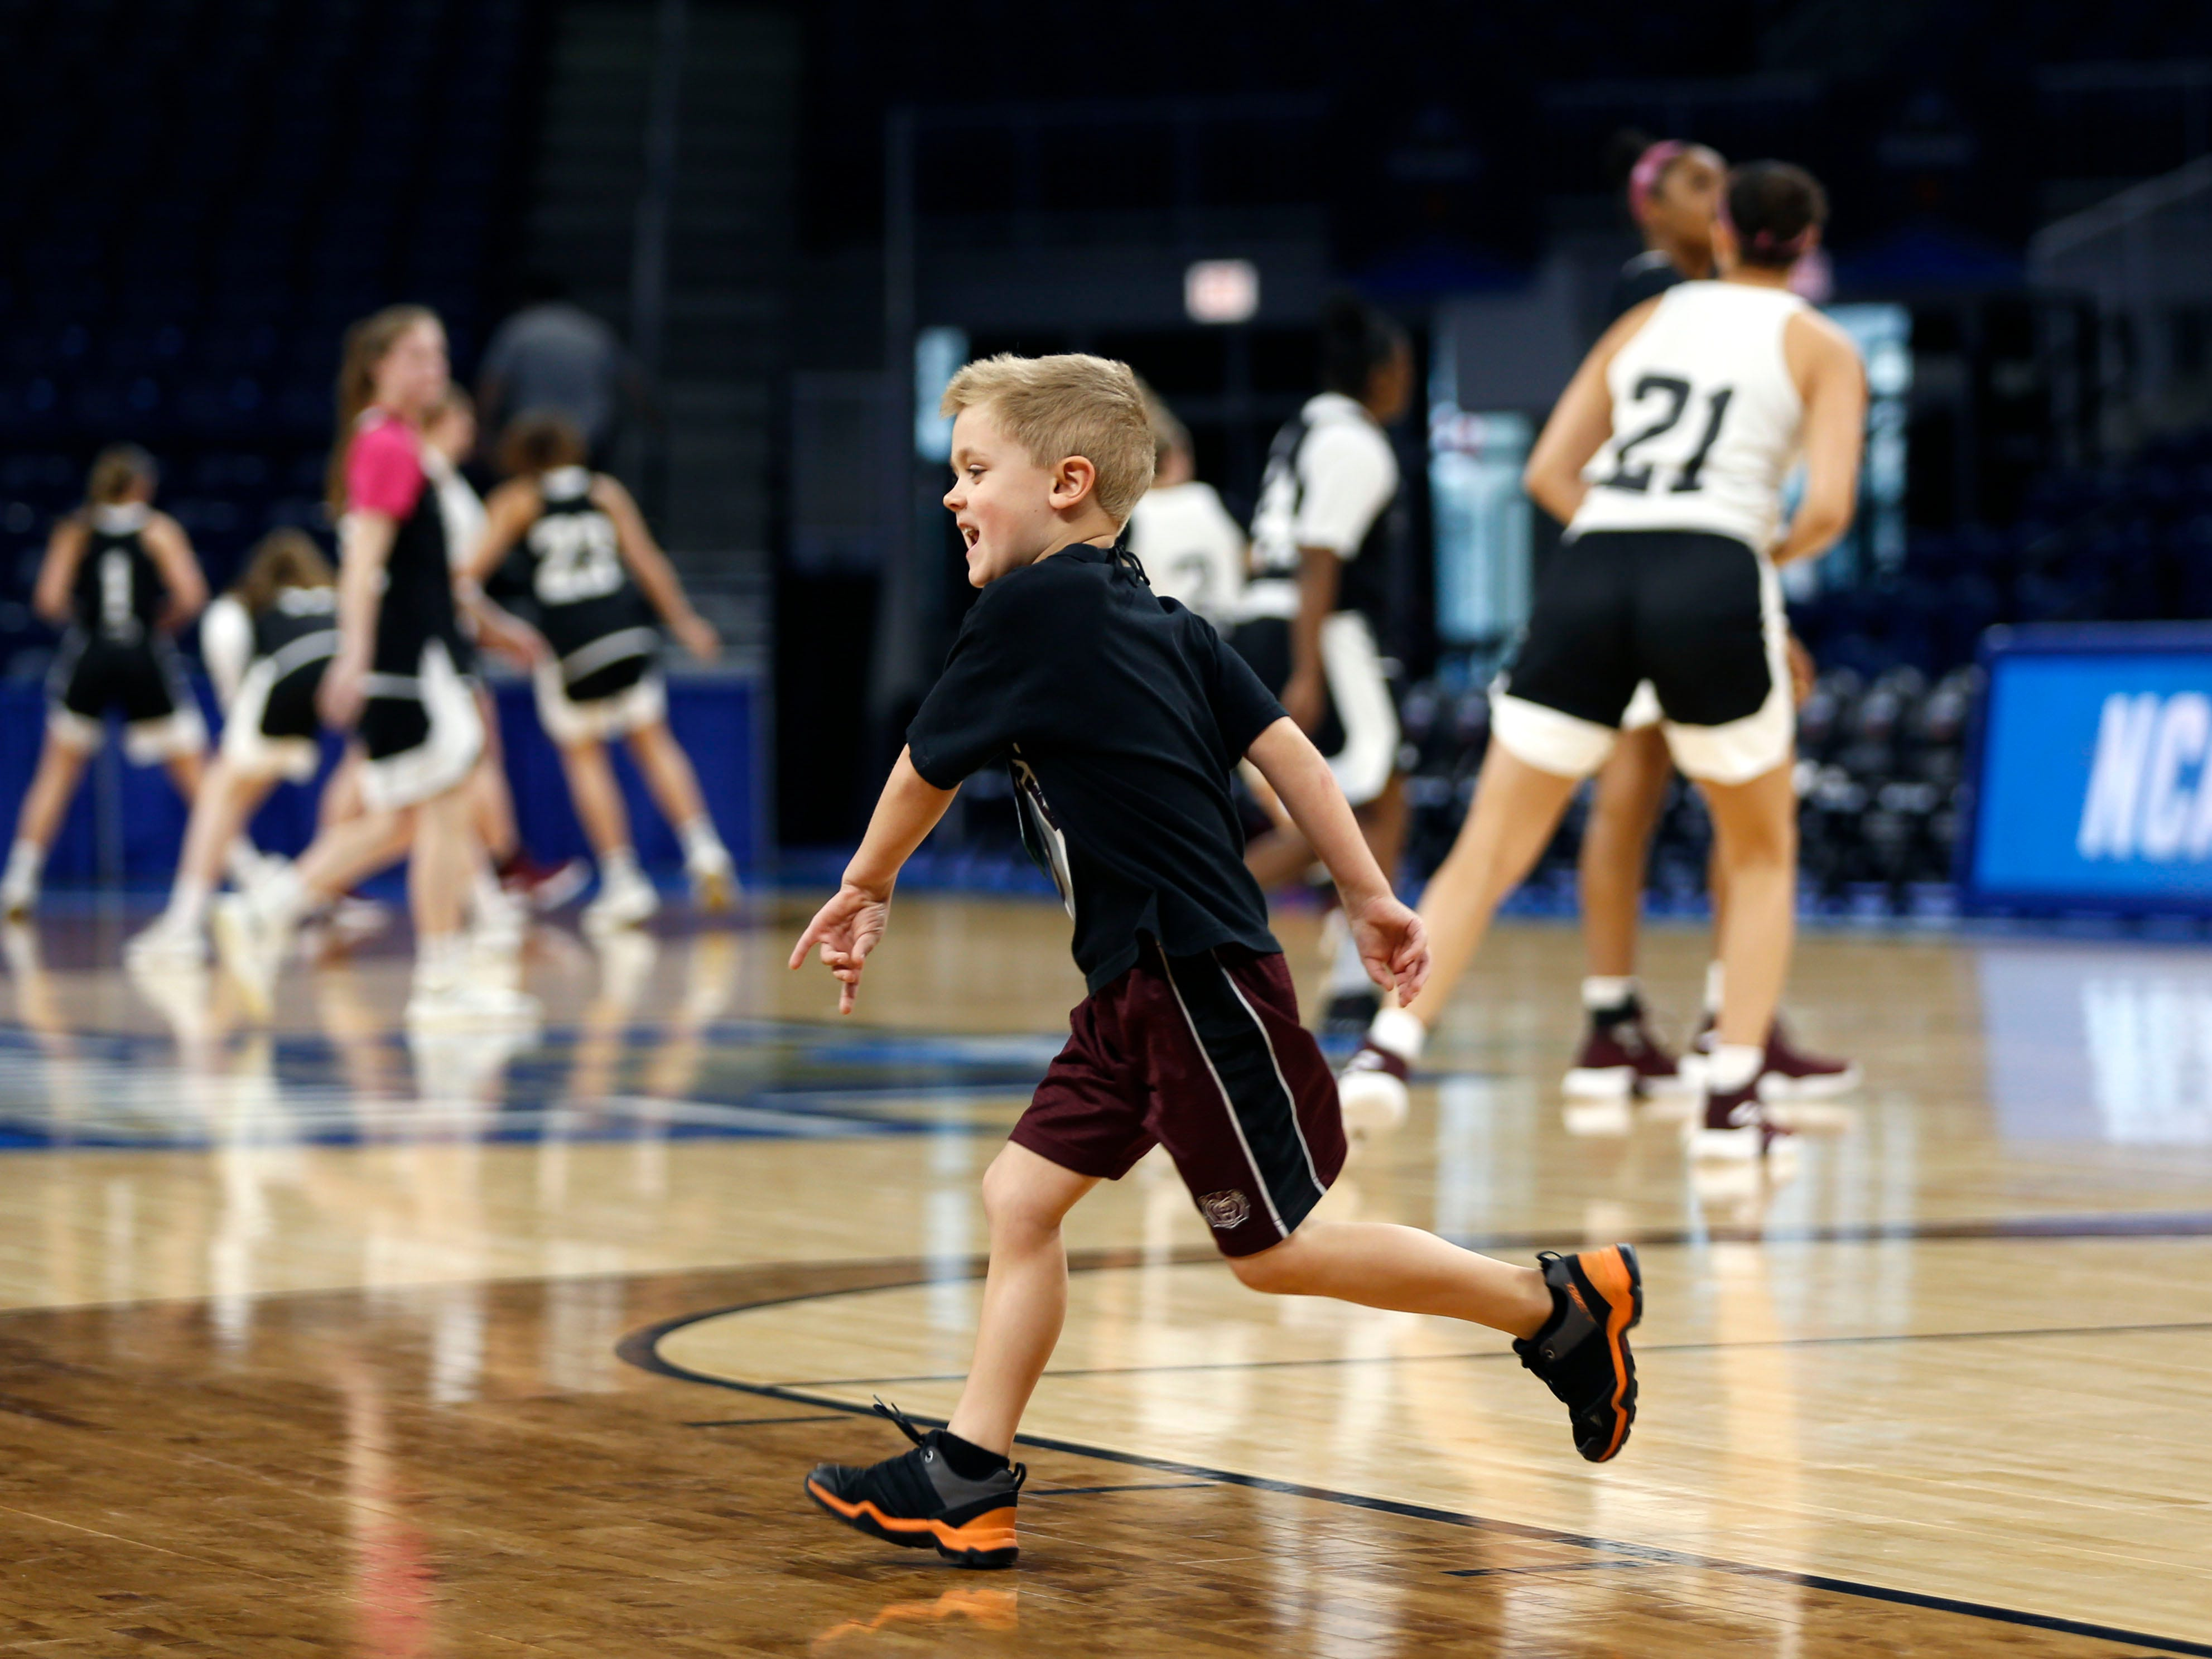 Jackson Harper, 5, the son of Lady Bears head coach Kellie Harper warms up with the team during a practice session at Wintrust Arena on Friday, March 29, 2019. The Lady Bears are playing Stanford in the NCAA Women's Tournament on Saturday.